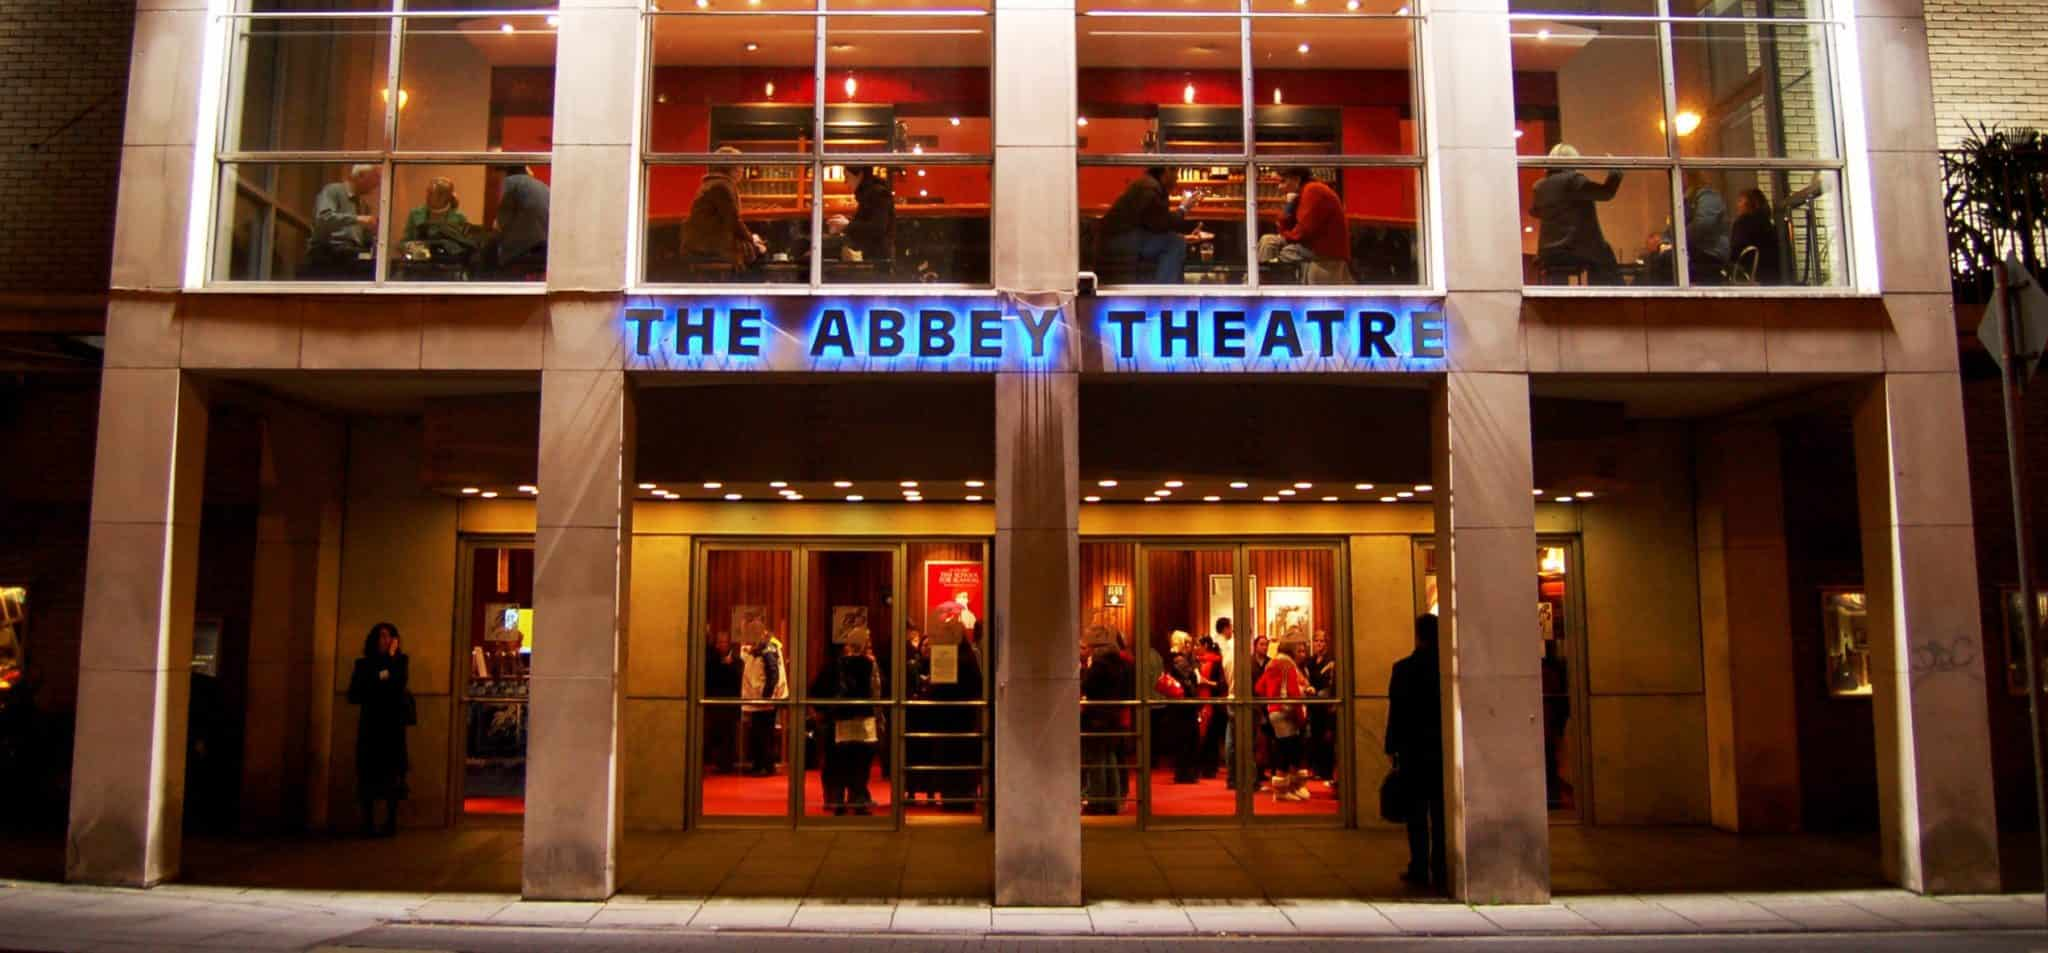 The Abbey Theatre Dublin